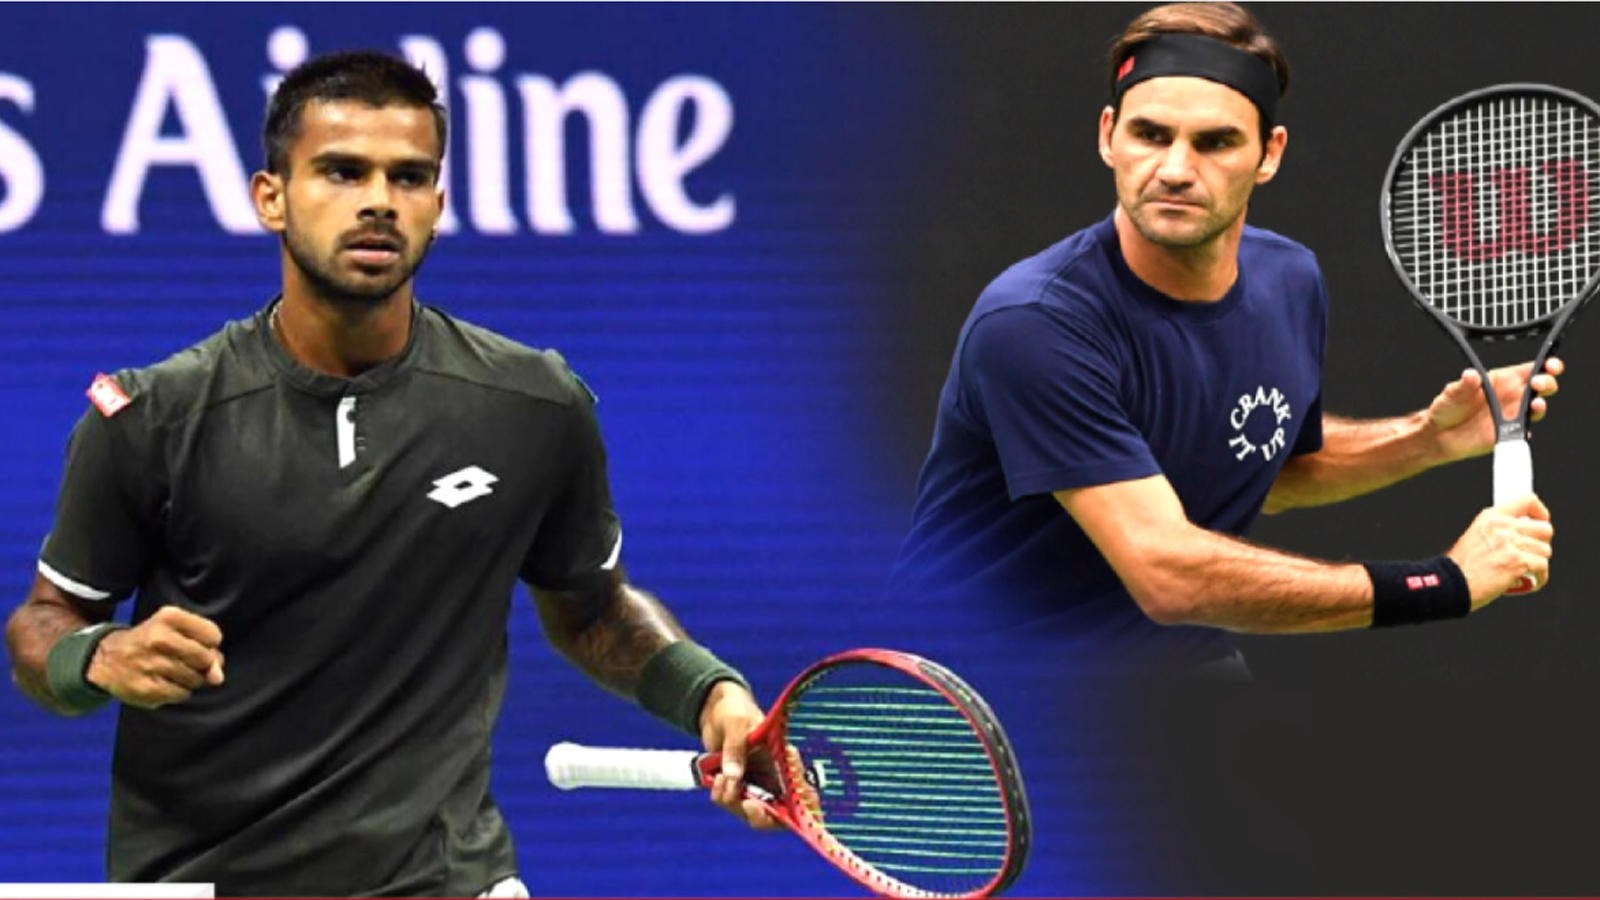 us-open-sumit-nagal-becomes-1st-indian-to-take-a-set-off-roger-federer